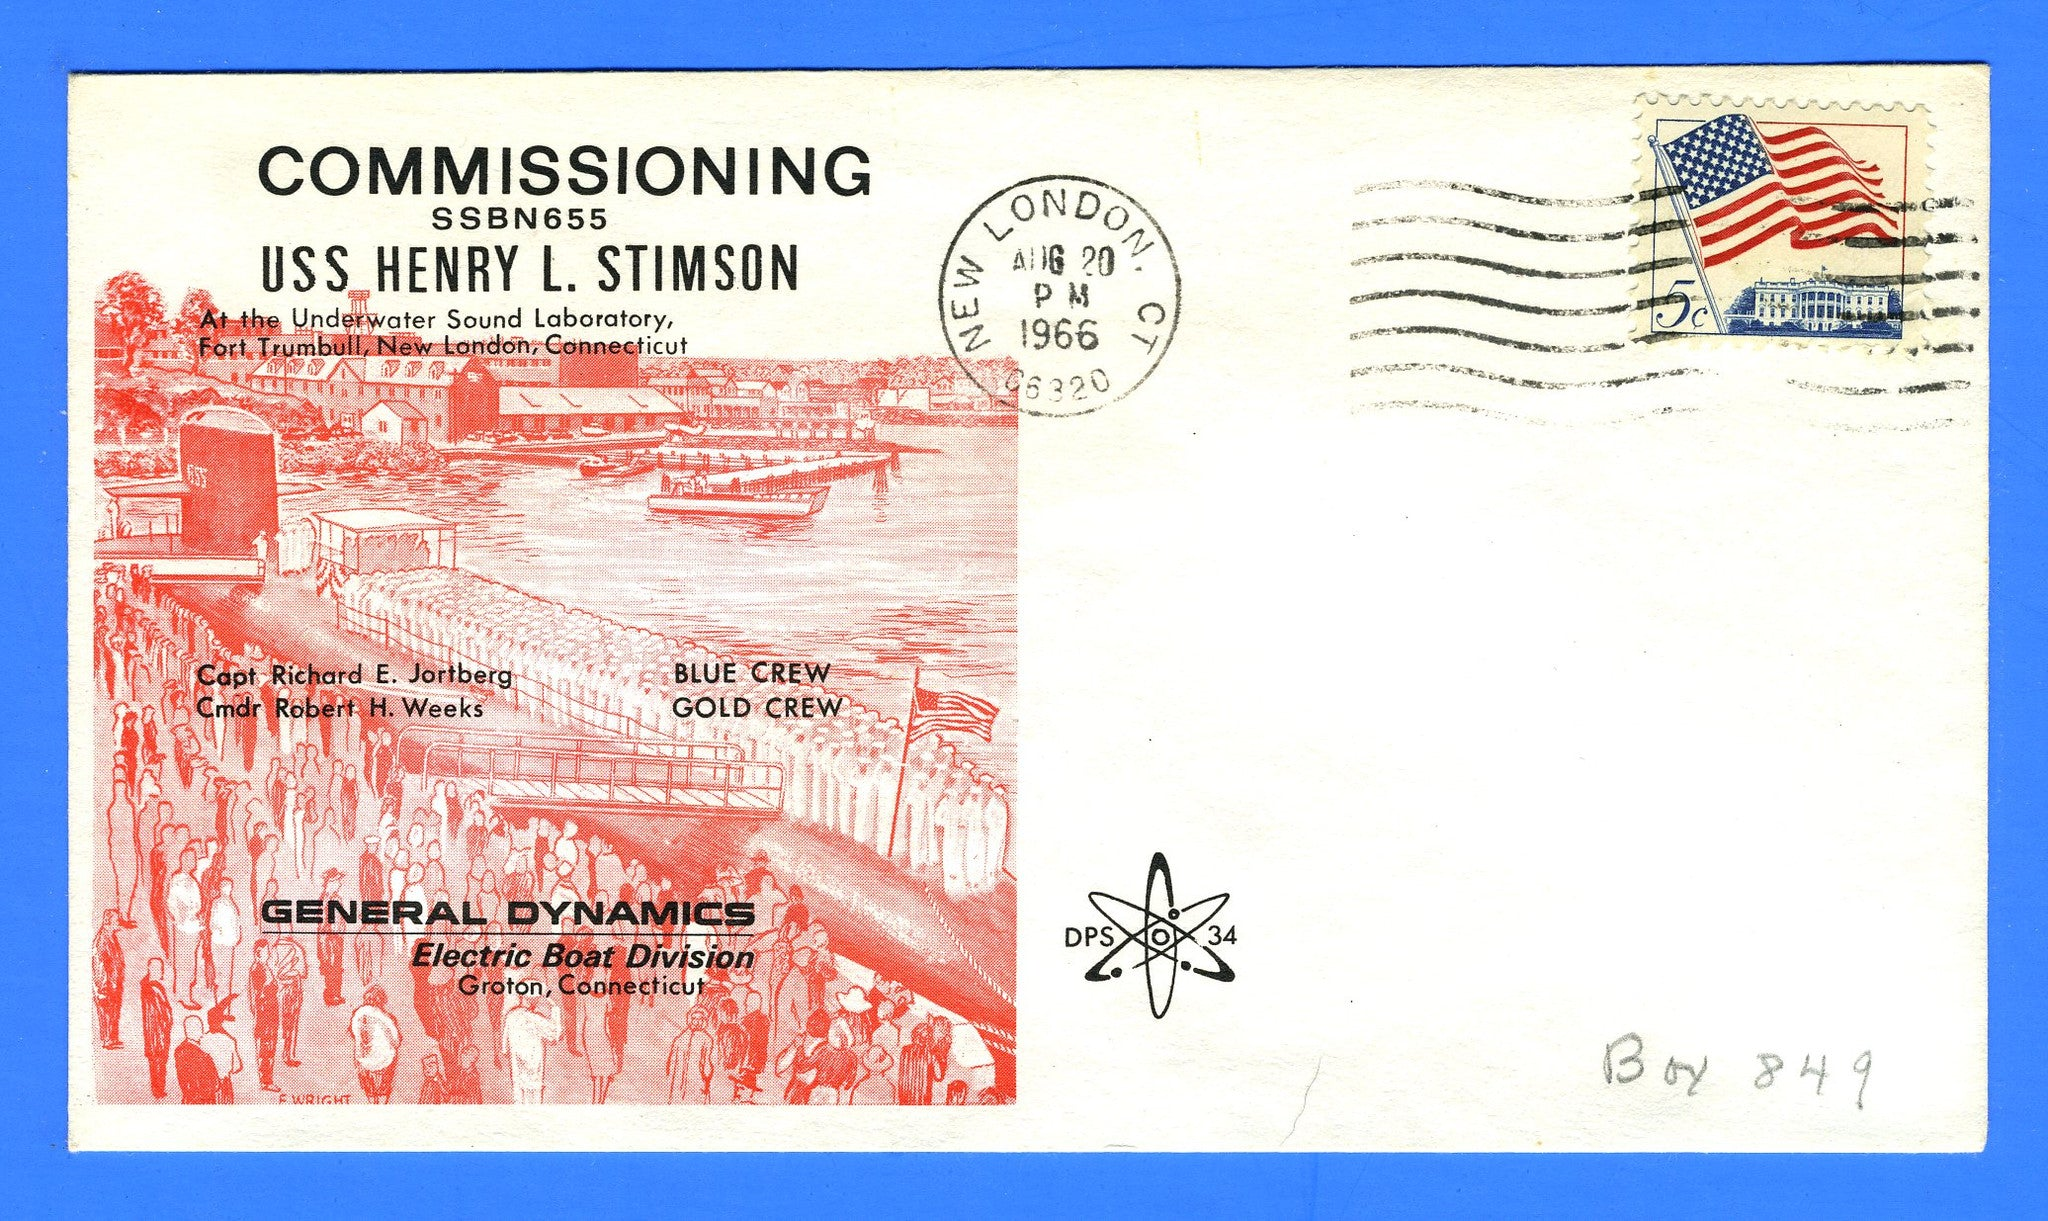 USS Henry L. Stimson SSBN-655 Commissioned August 20, 1966